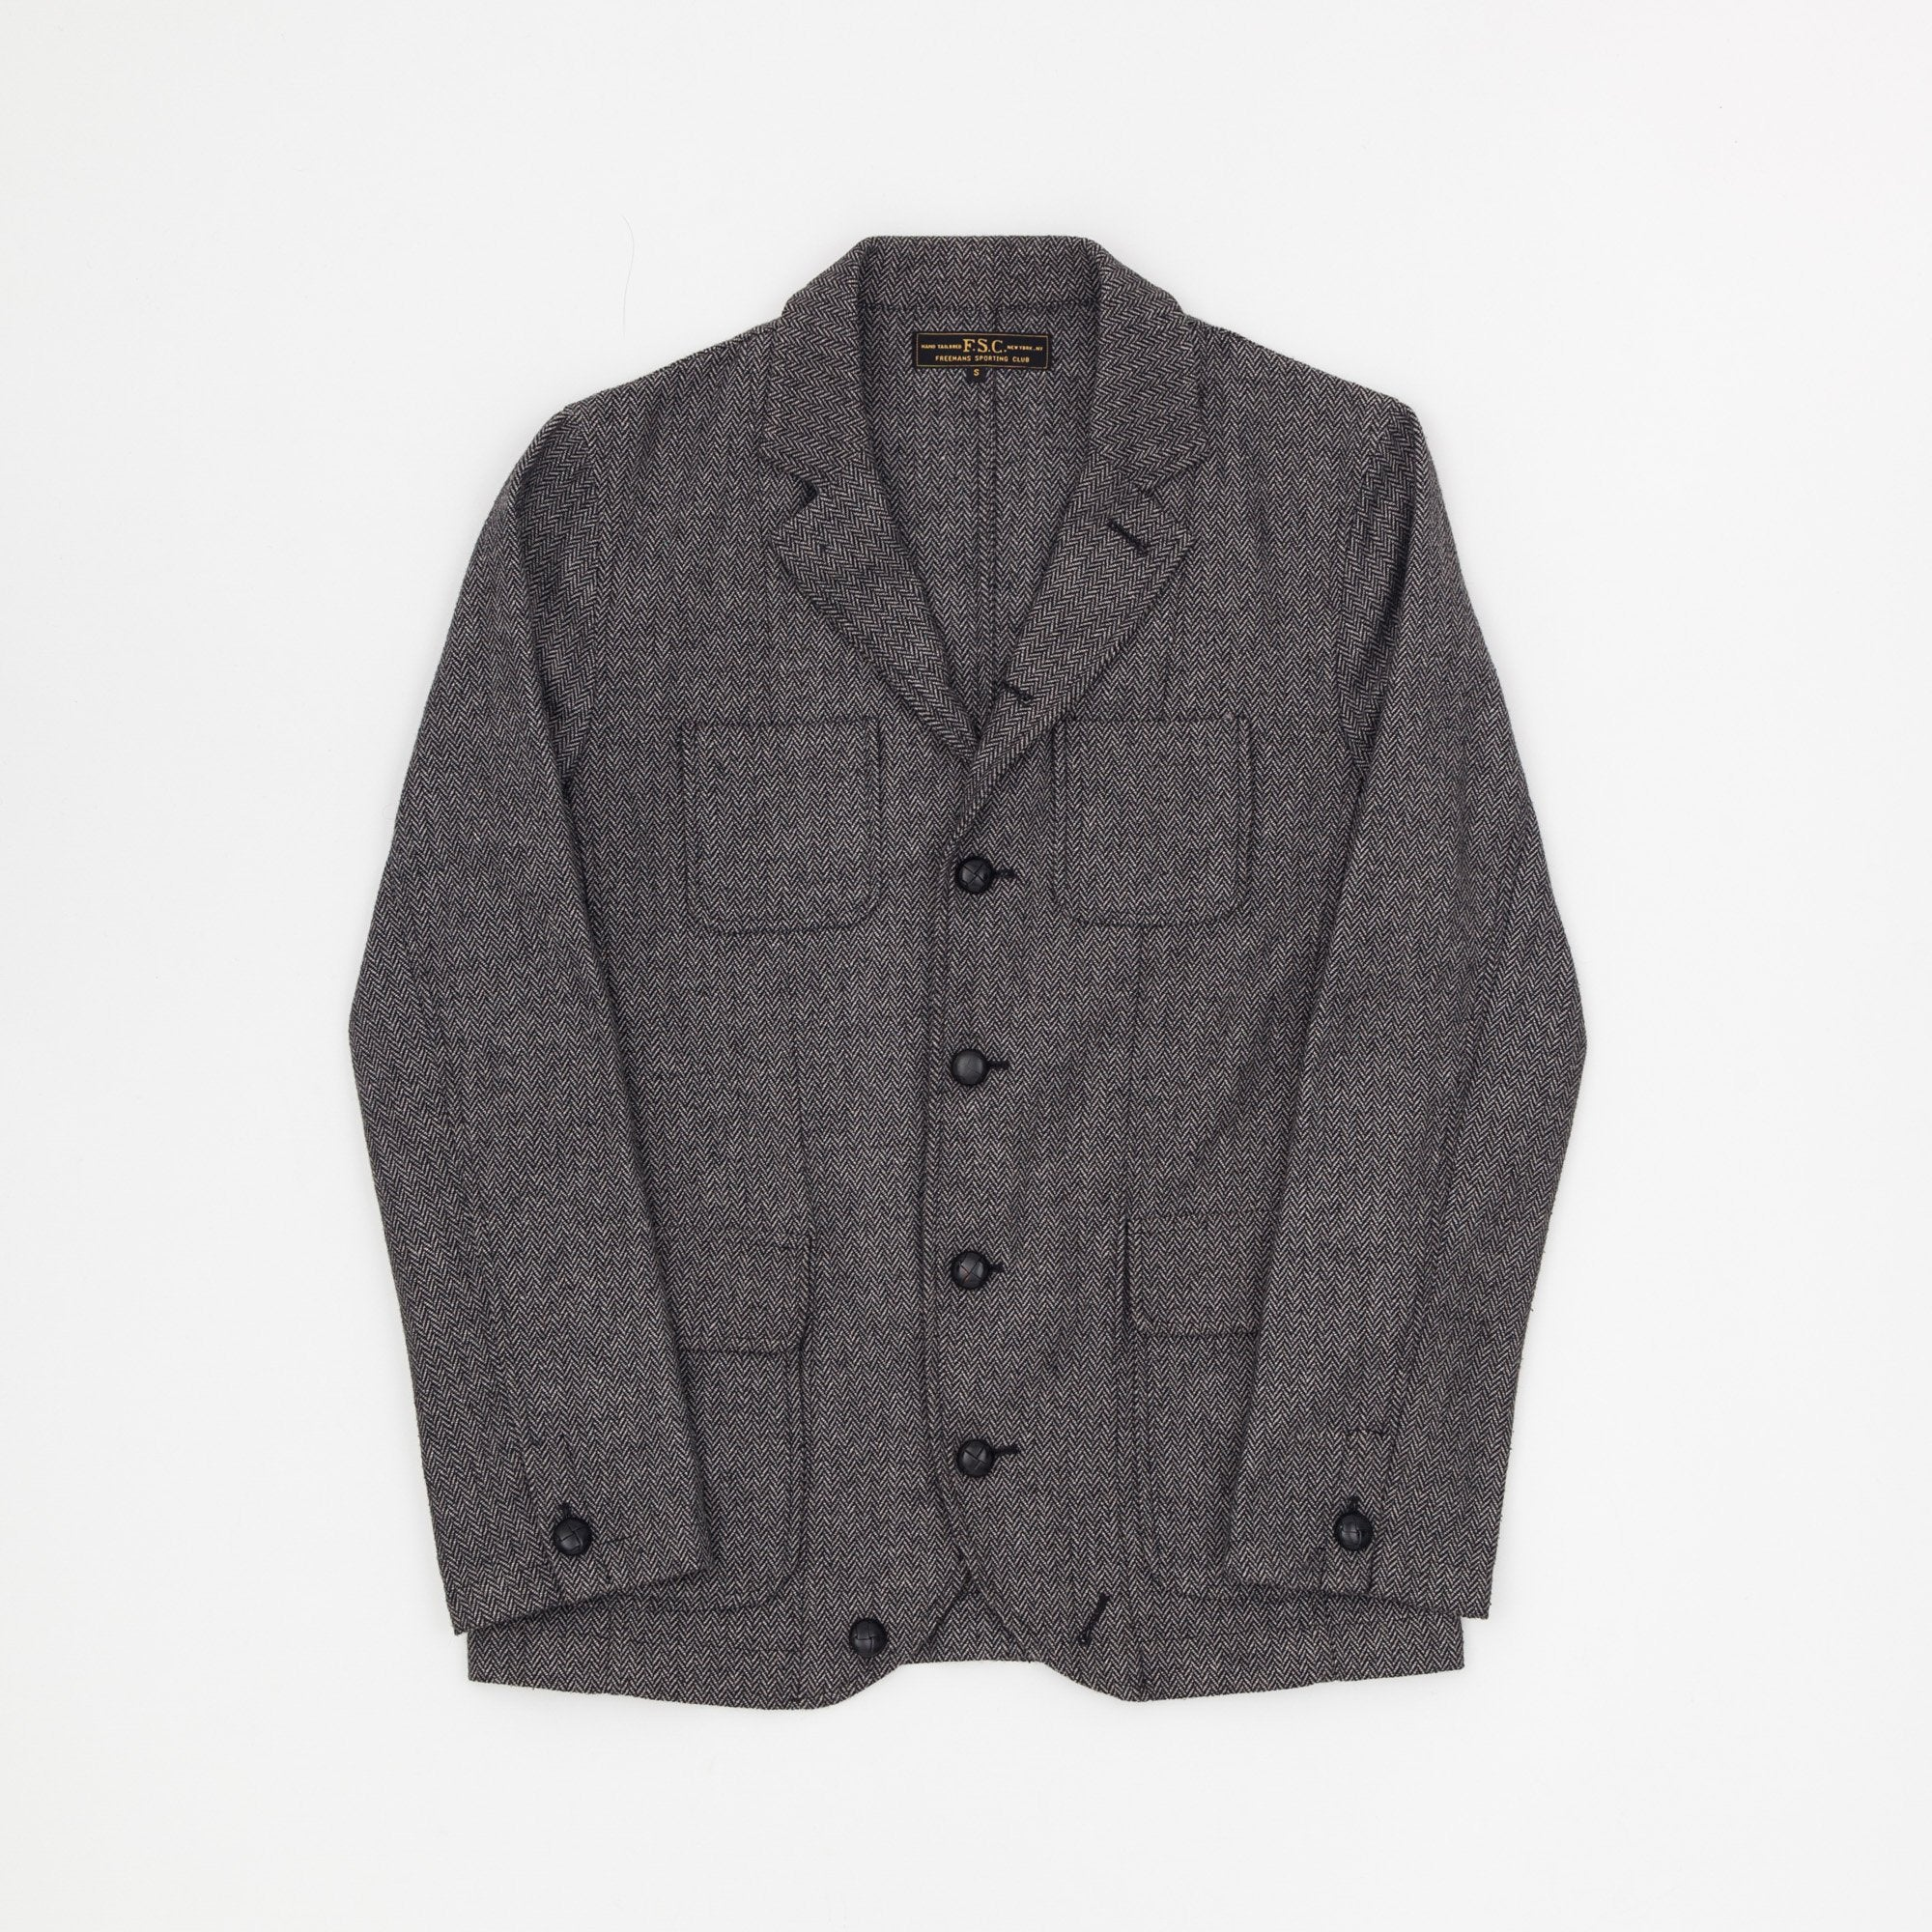 Freeman's Sporting Club Wool Herringbone Jacket